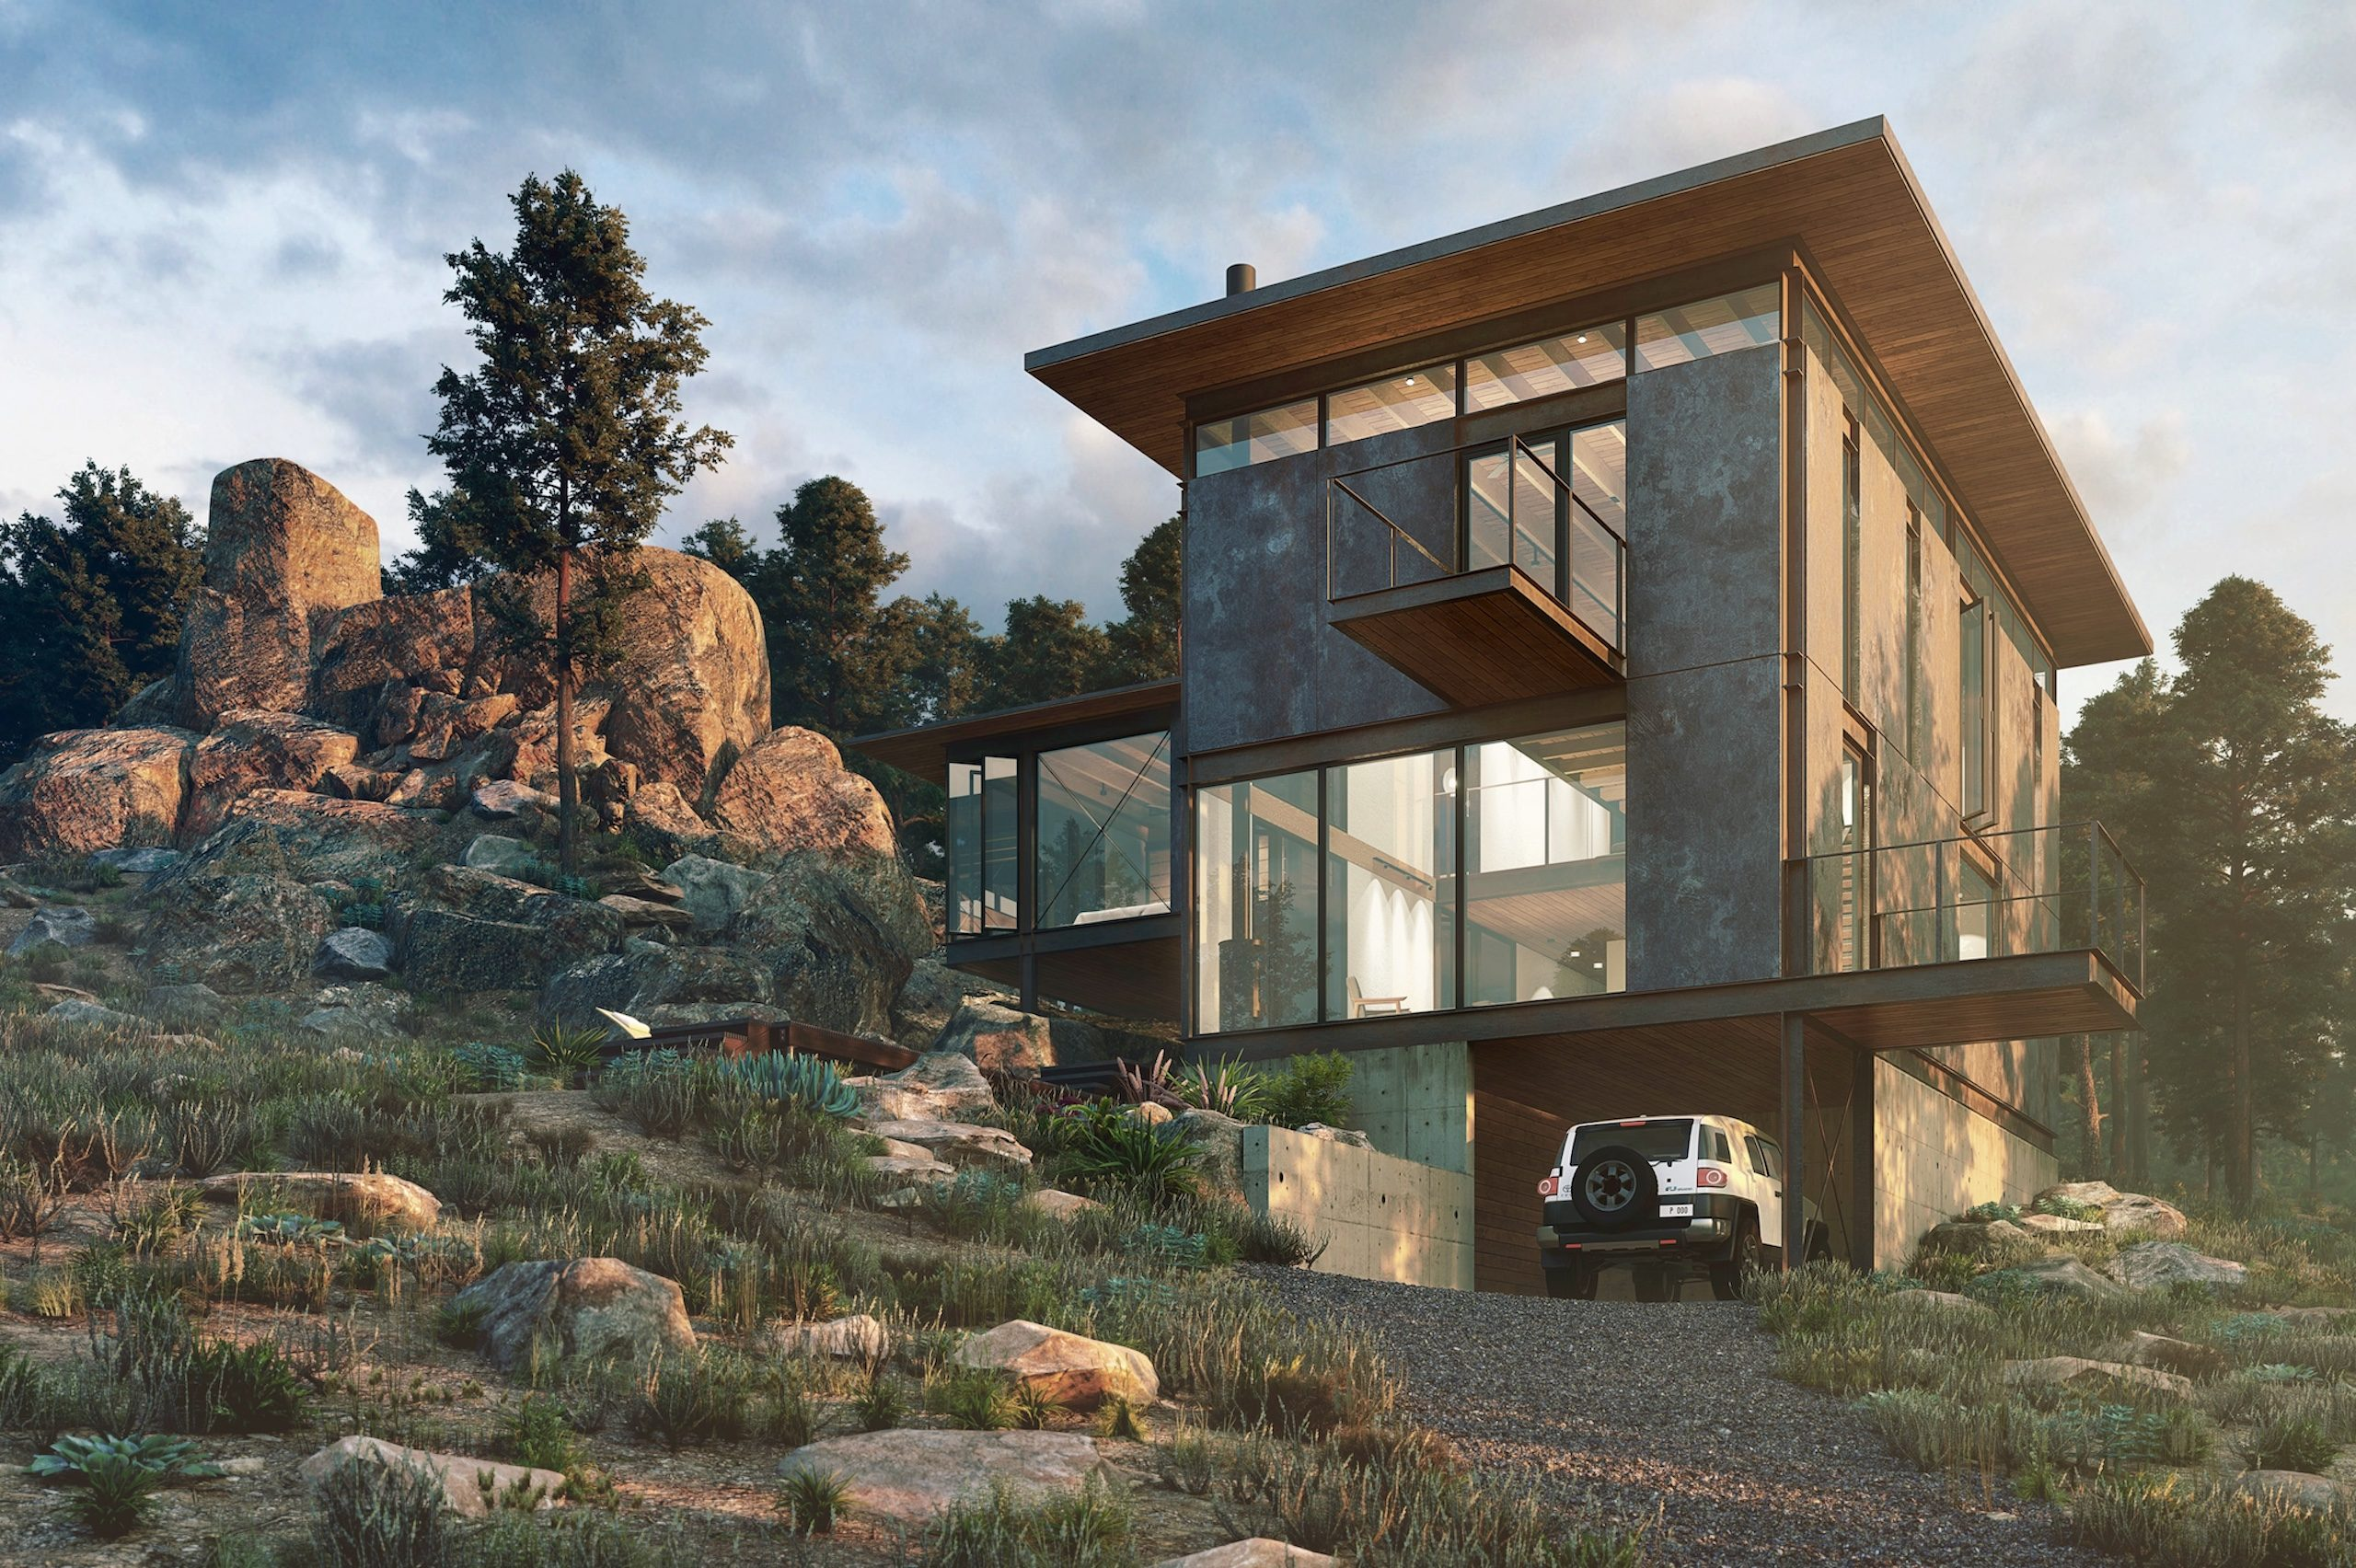 Rendering of The Lookout project by Renée del Gaudio Architecture.